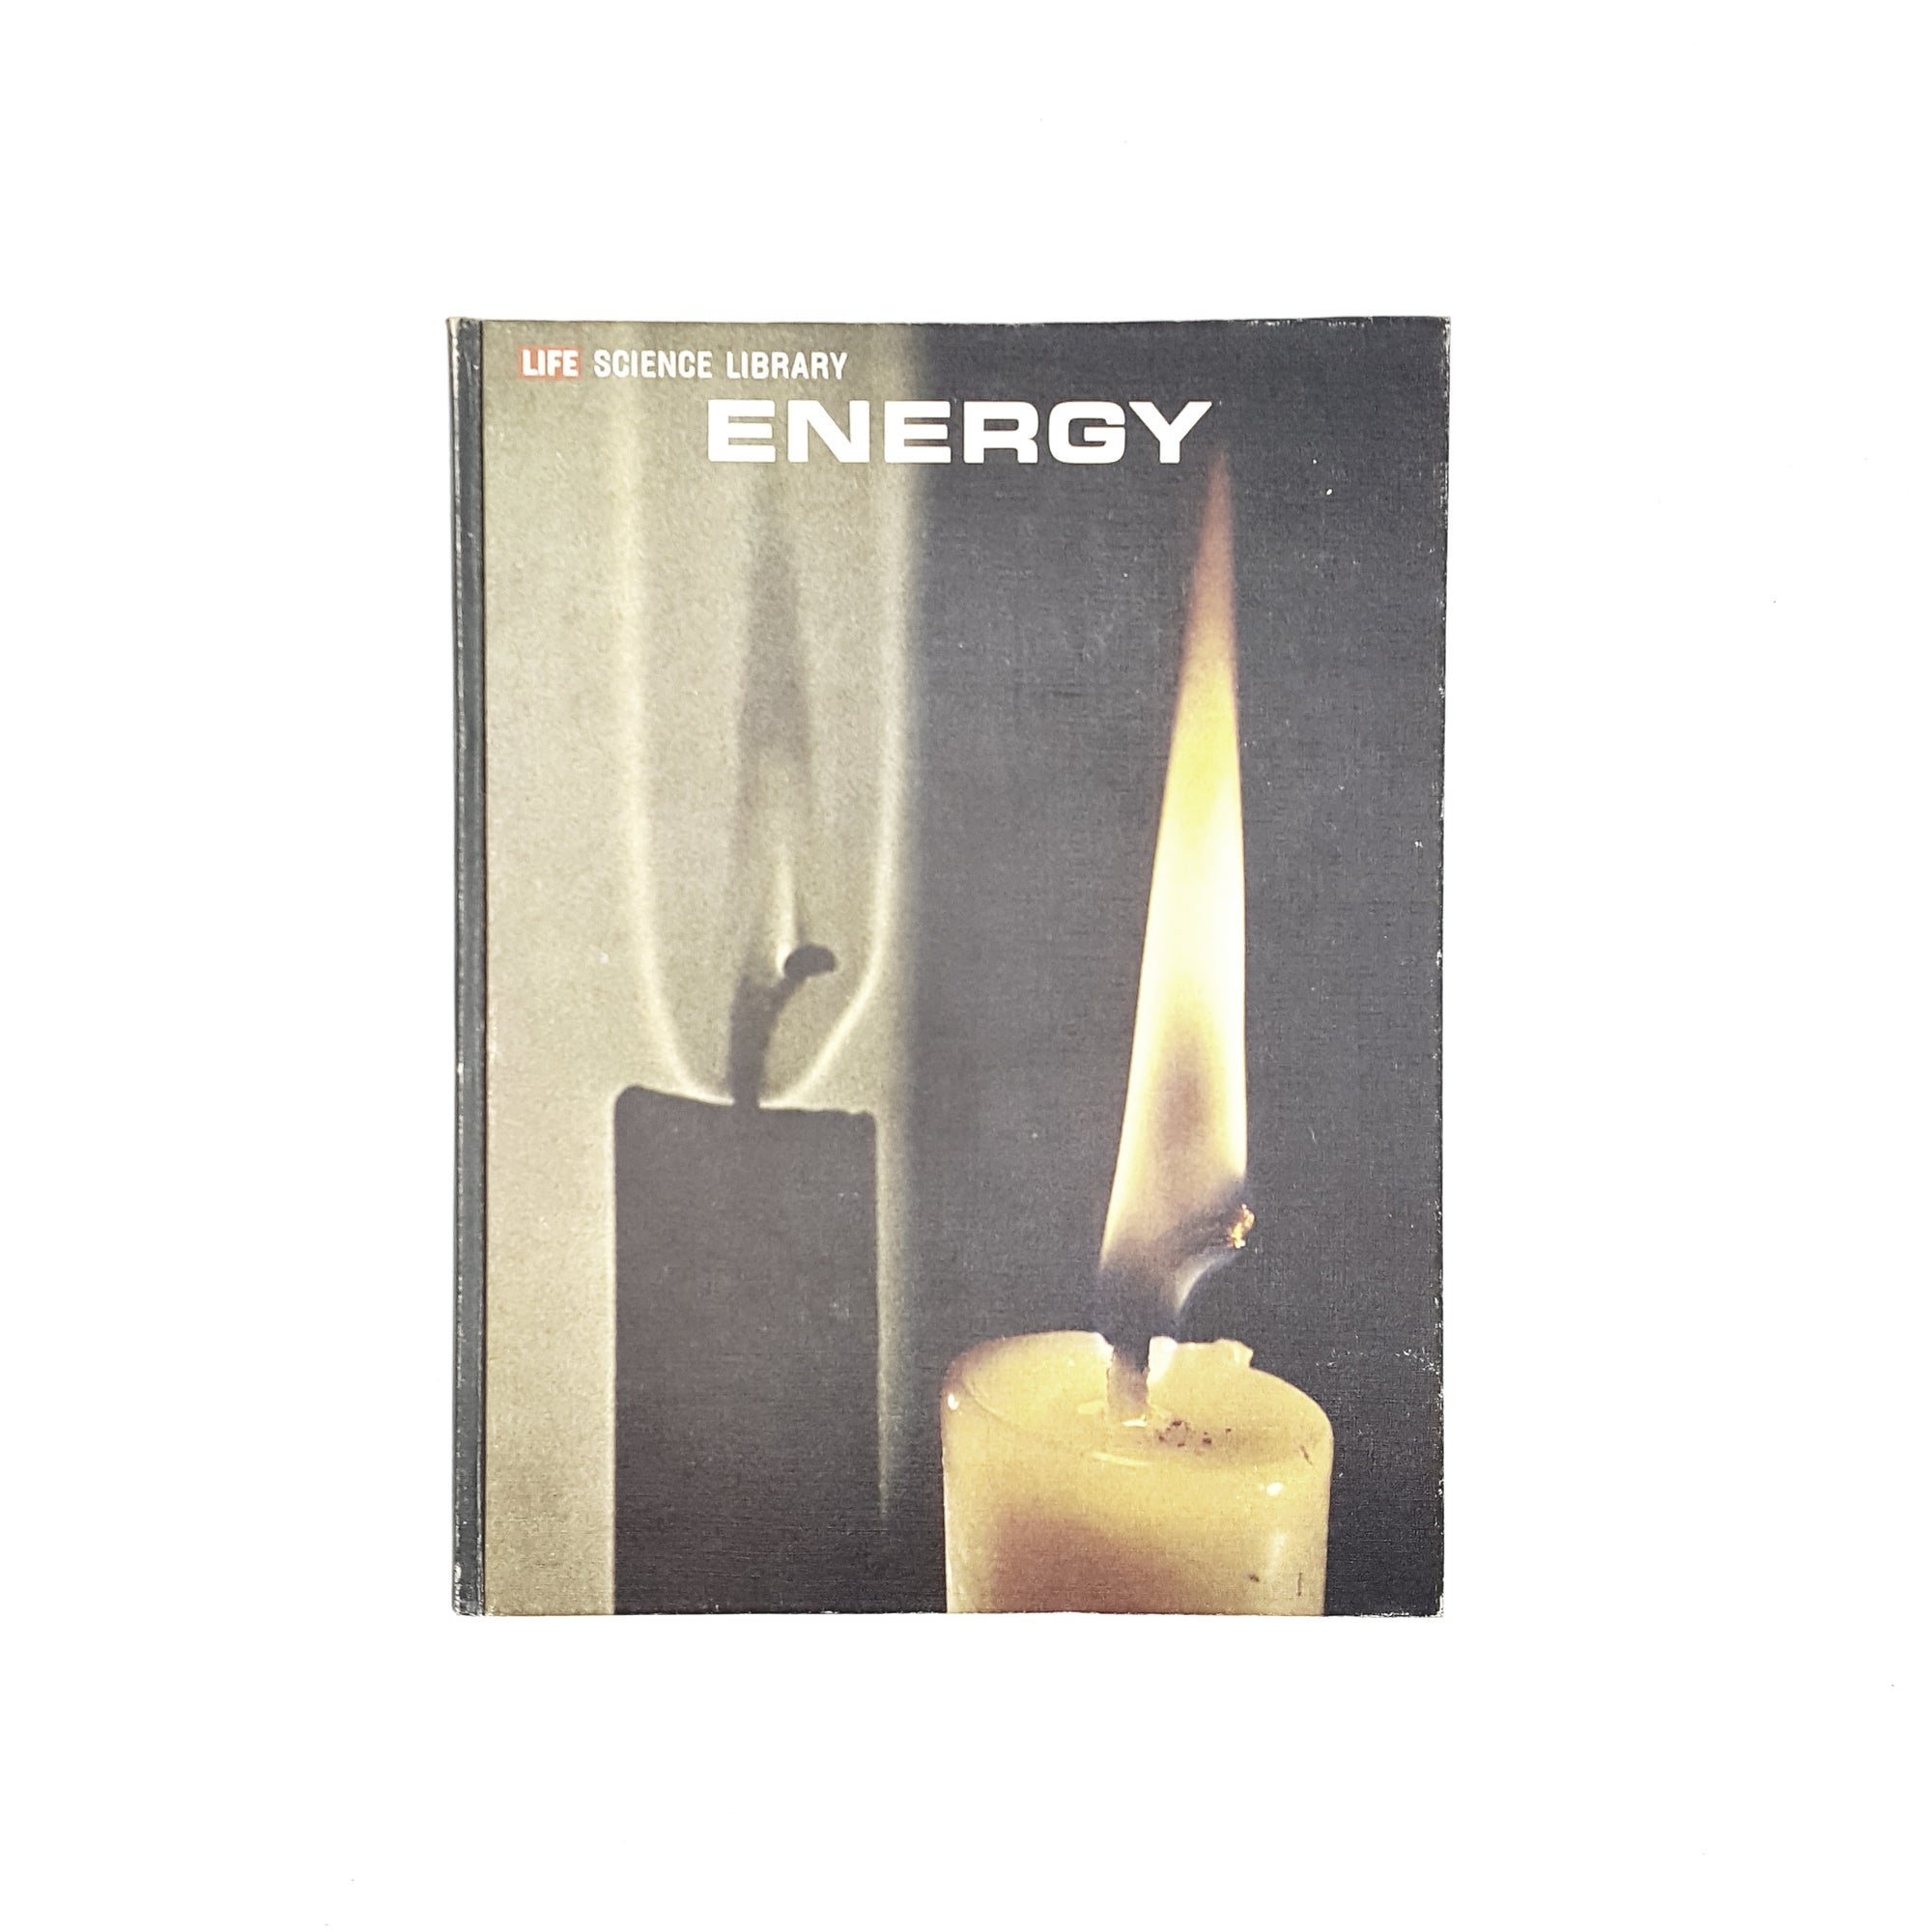 Life Science Library: Energy 1973